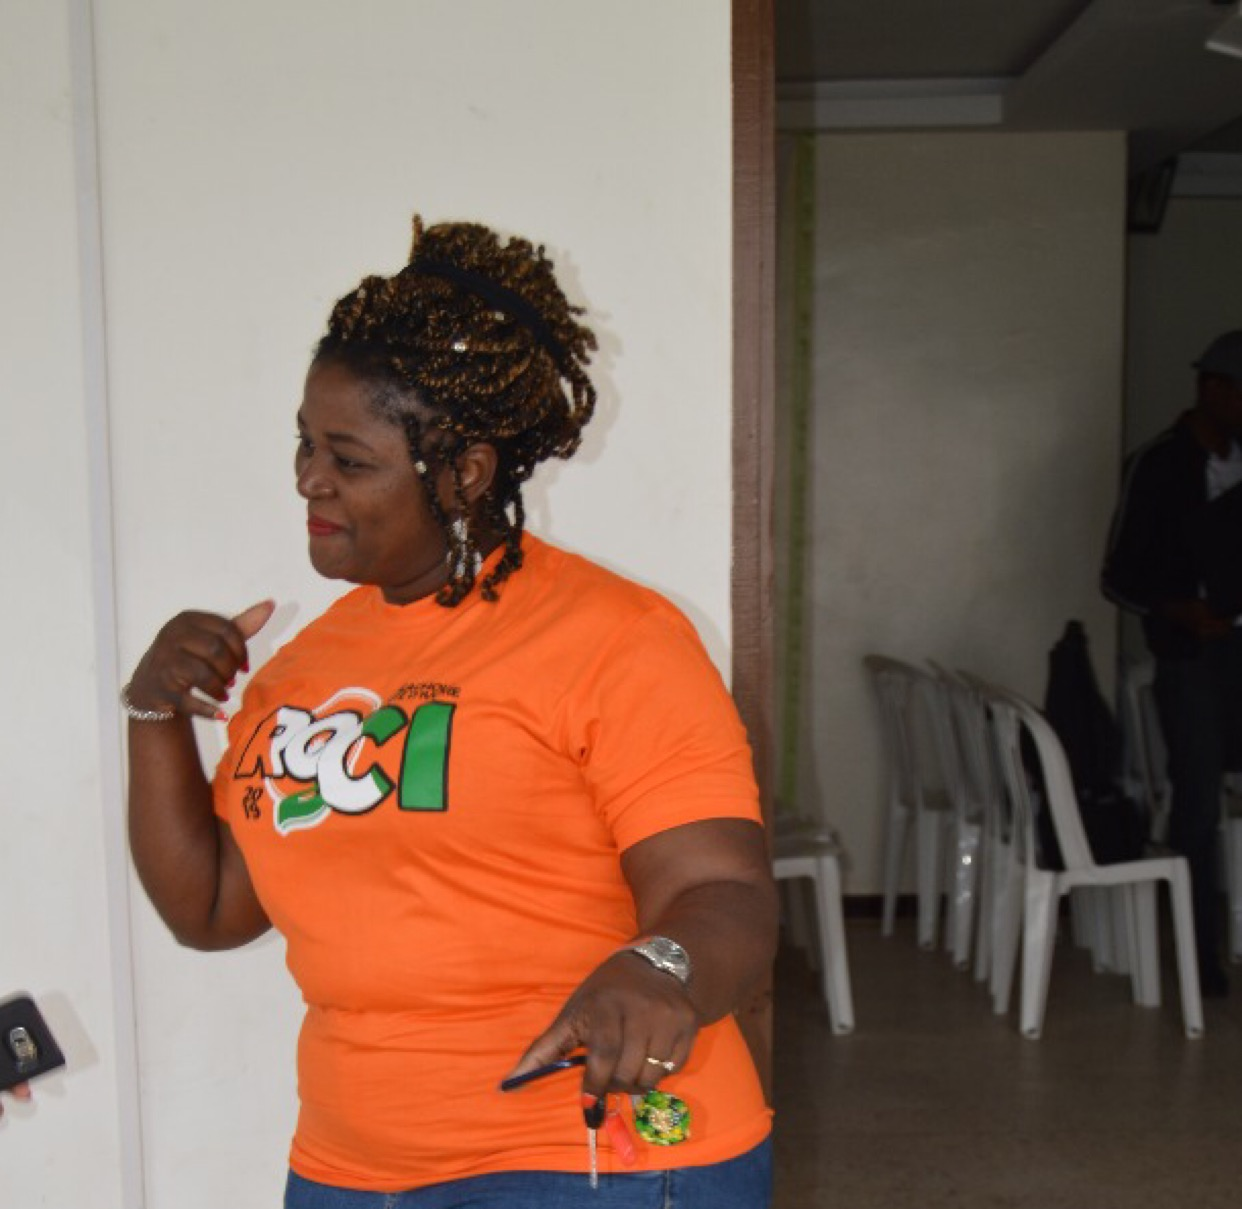 CELEBRATING COTE D'IVOIRE @ 59.